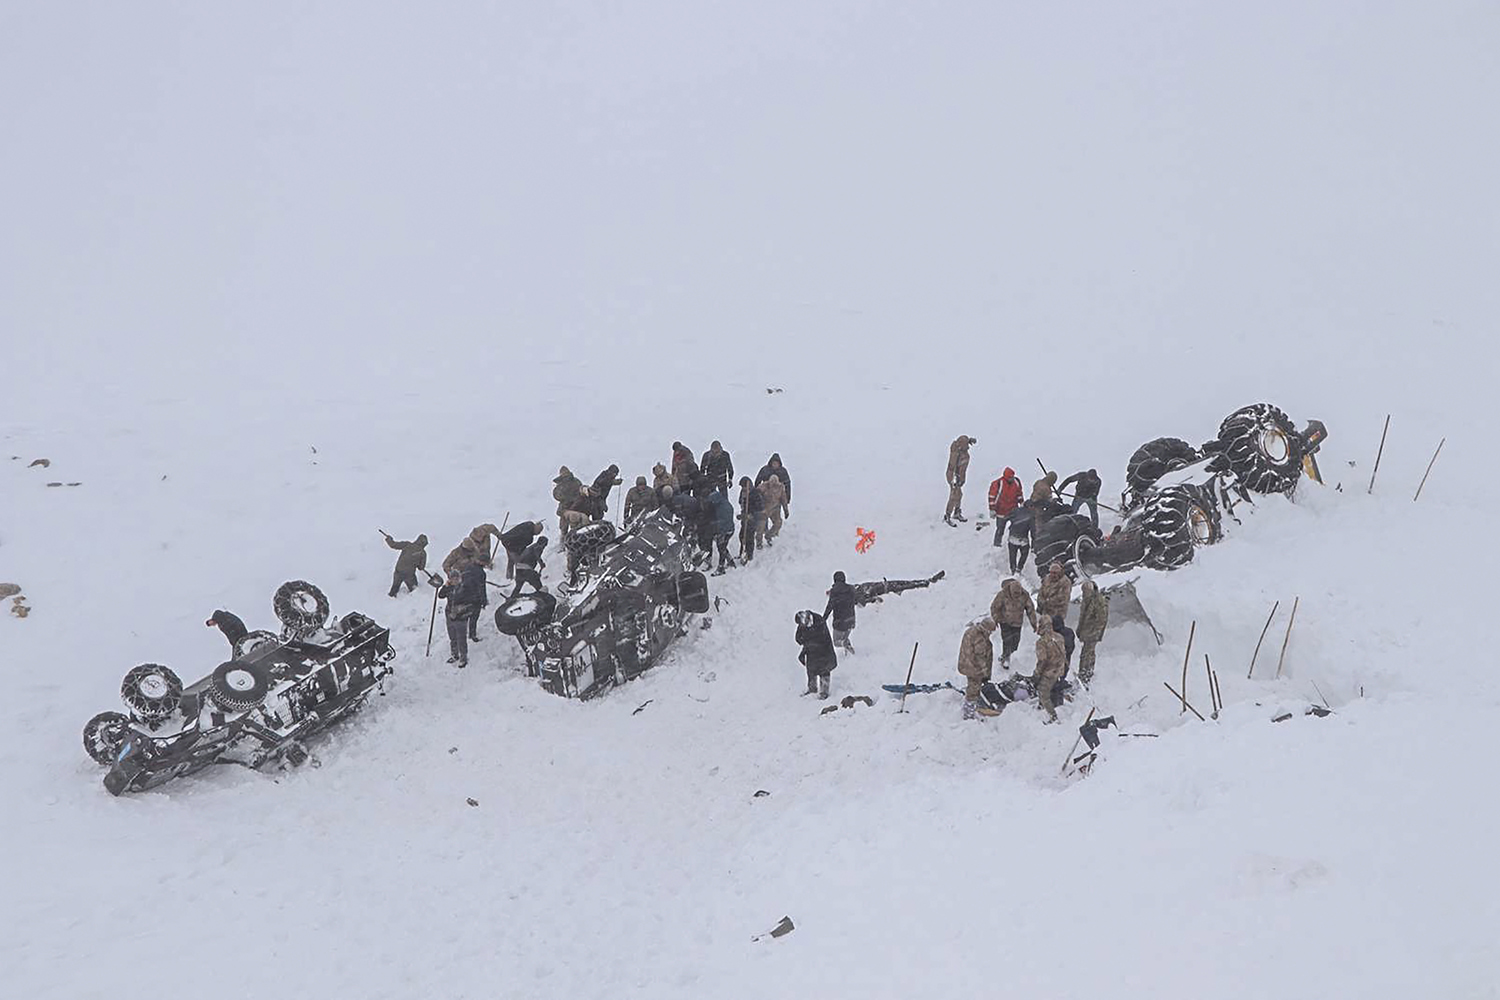 Emergency service members dig in the snow near the town of Bahcesehir, in eastern Turkey, on Feb. 5, as they search for dozens of rescue workers missing after being hit by a second avalanche while on a mission to find two people who vanished in a previous snow-slide. -/DHA/AFP via Getty Images